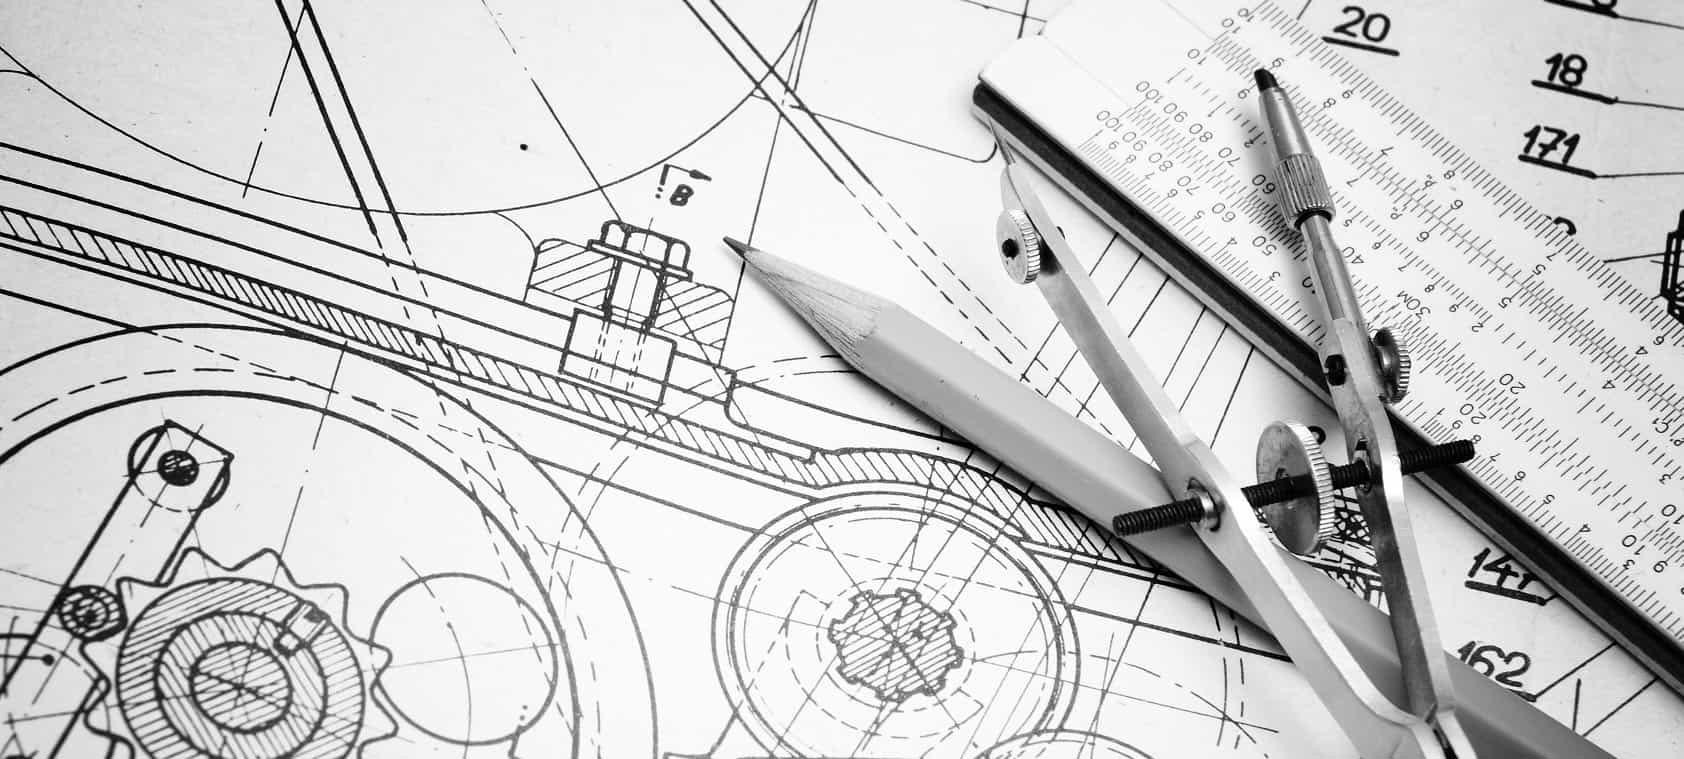 A black and white photo of an engineering drawing, pencil, compass and ruler